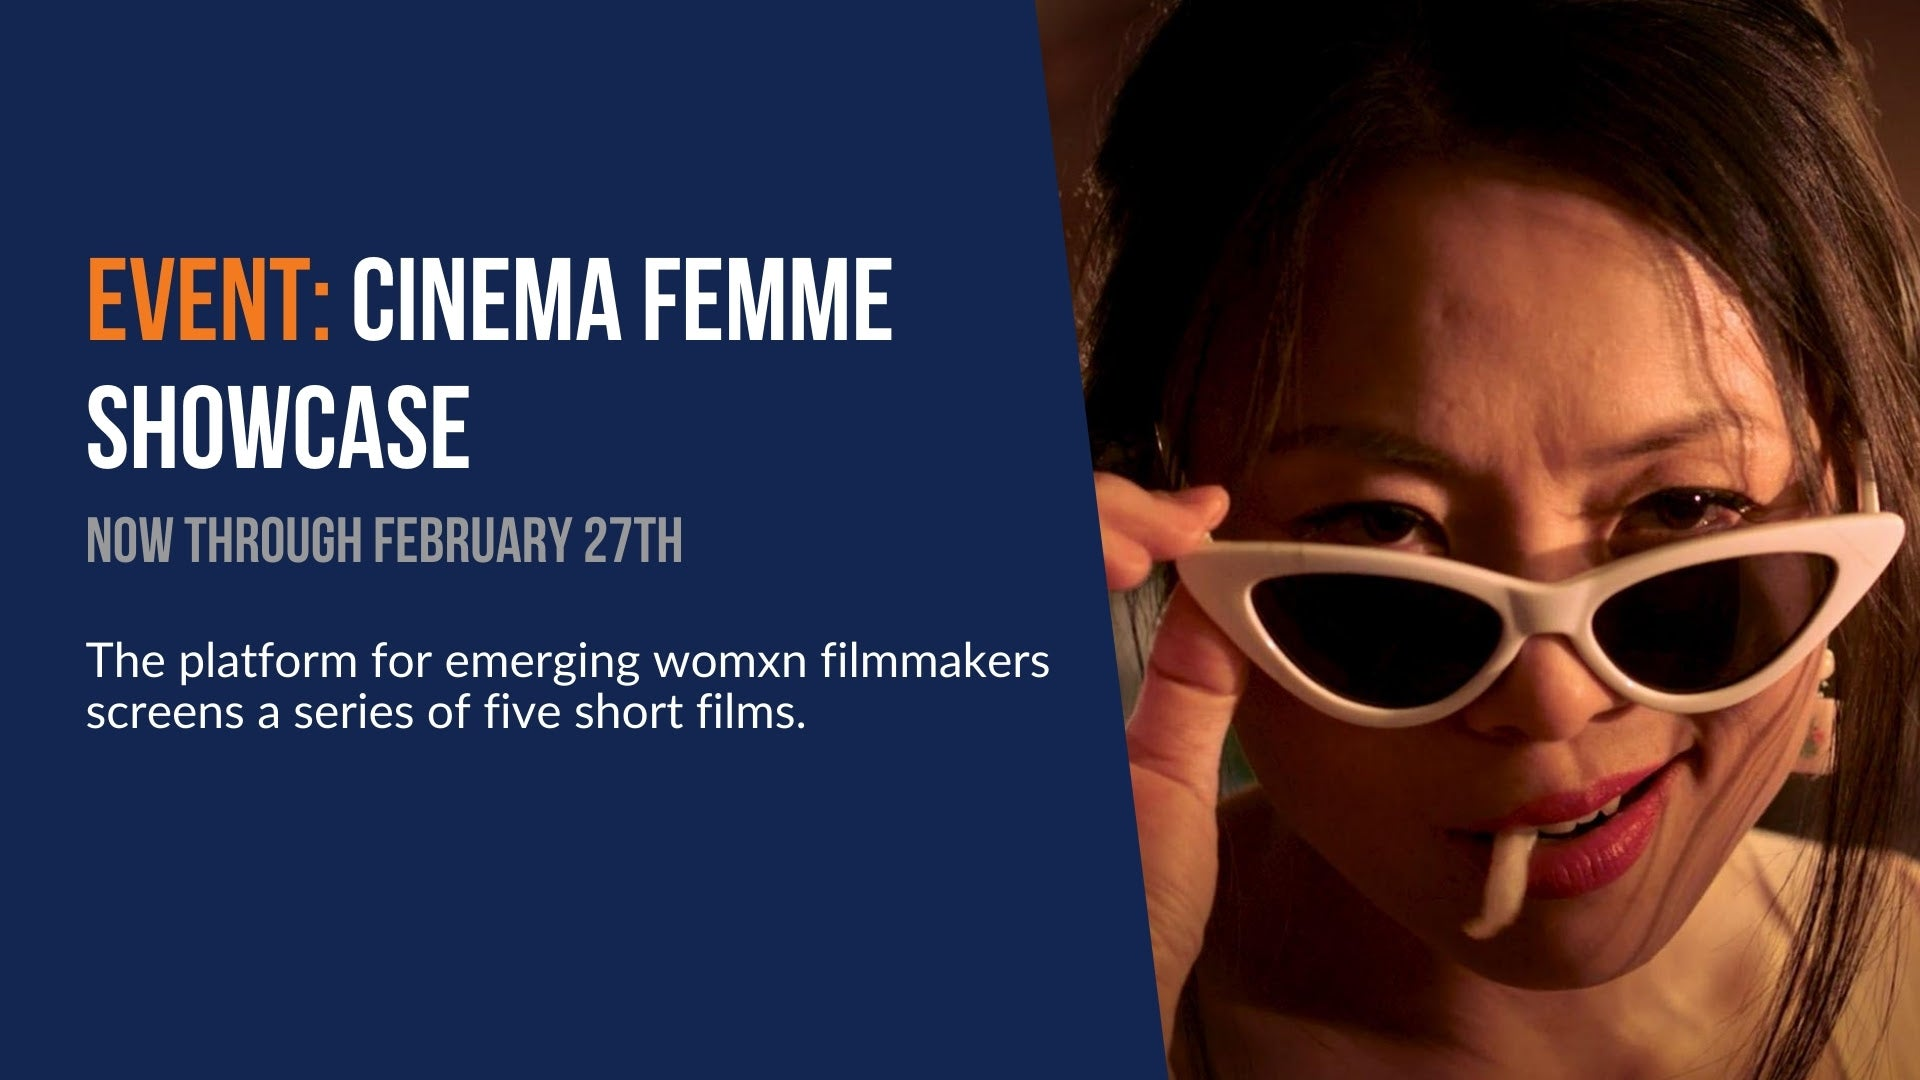 Event: Cinema Femme Showcase. Now through February 27th. The platform for emerging womxn filmmakers screens a series of five short films.